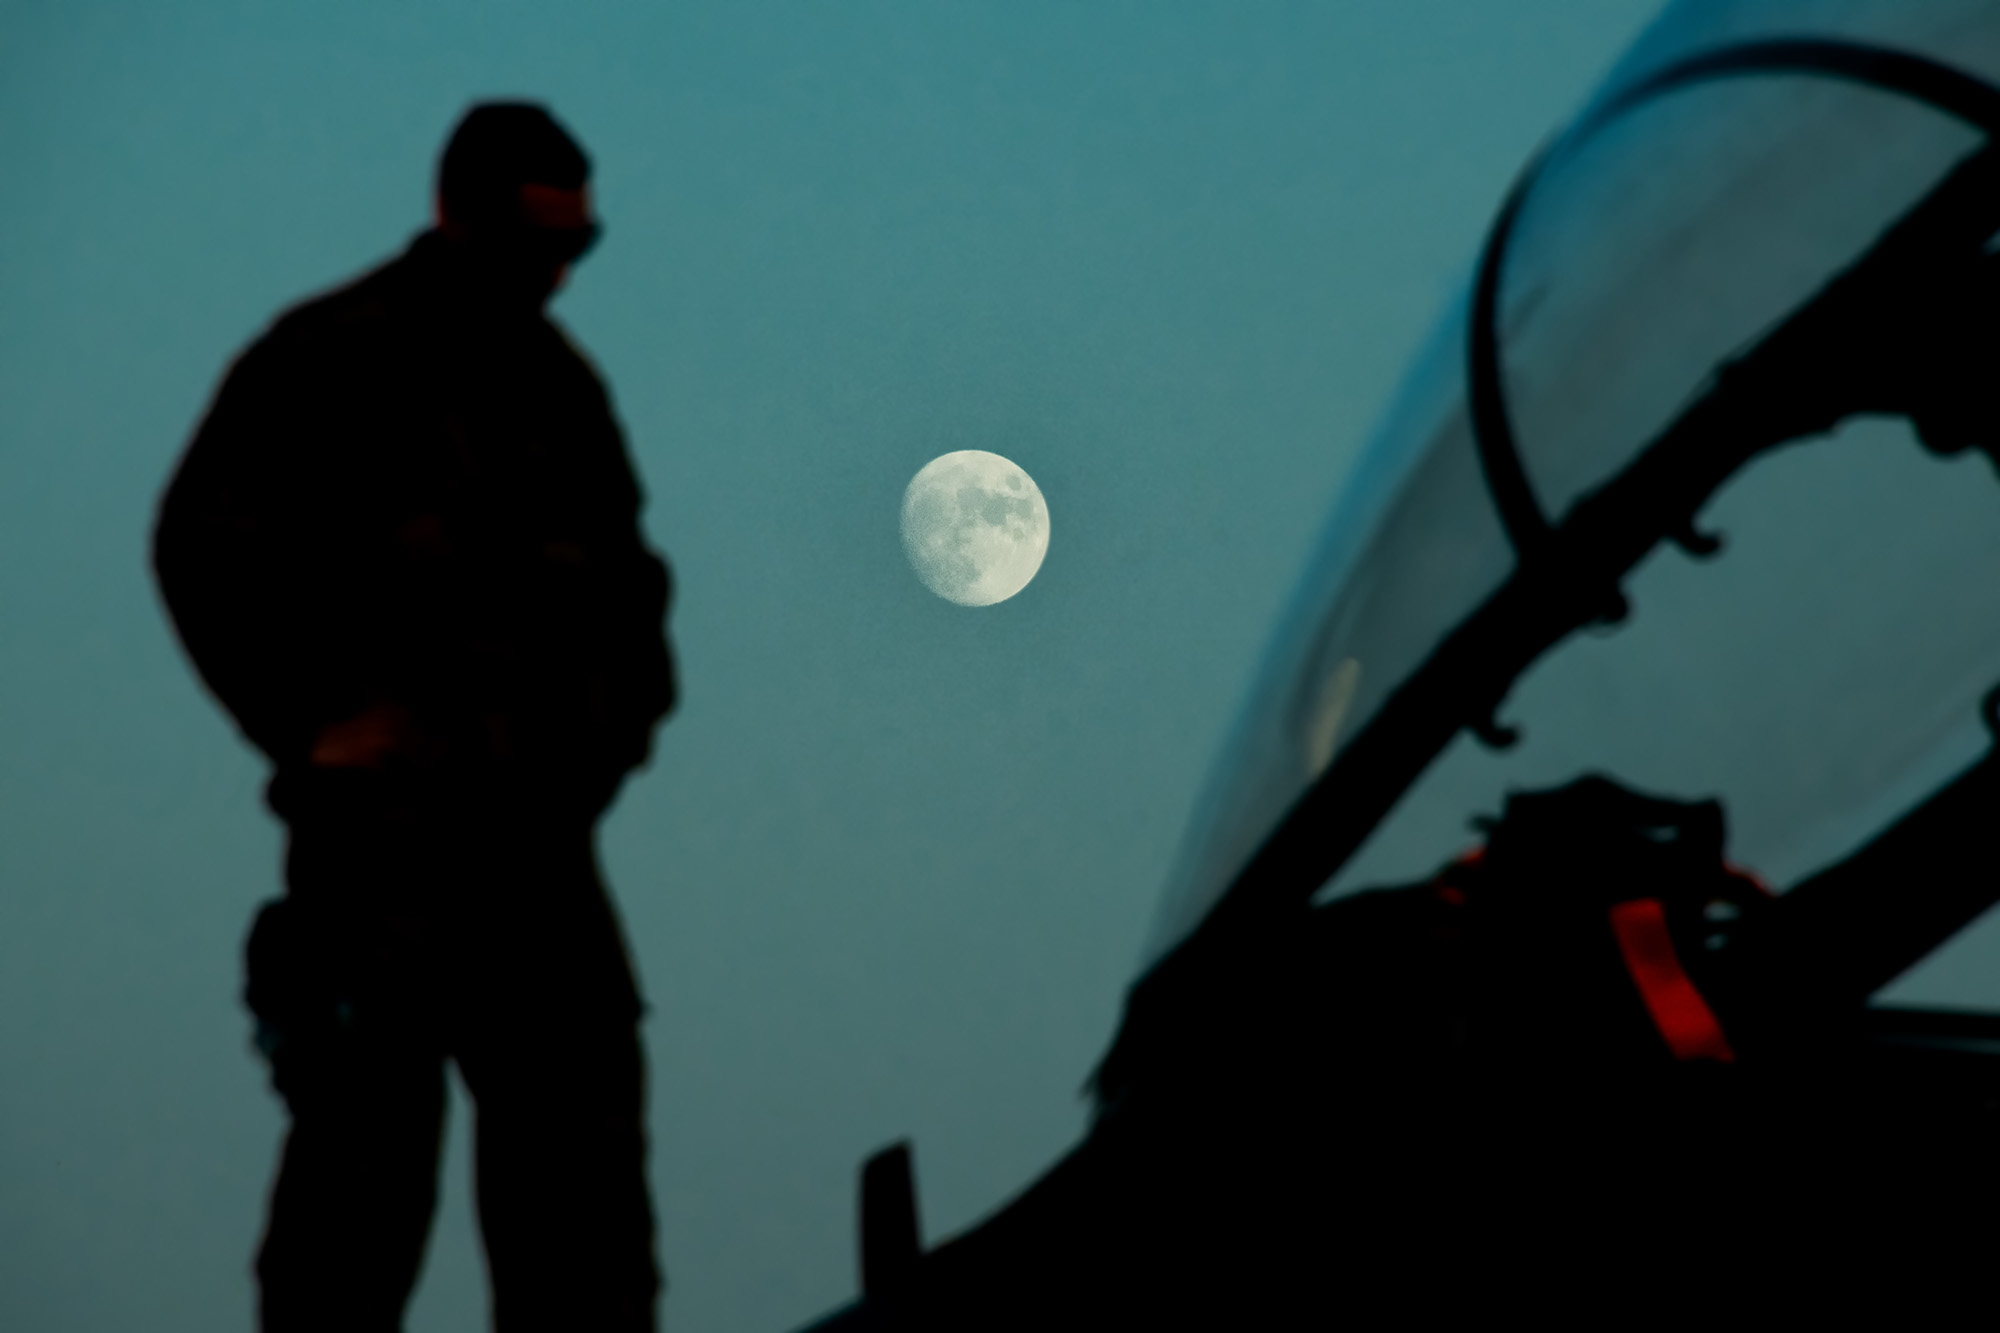 A maintainer deployed to the 332d Air Expeditionary Wing, checks an F-15E Strike Eagle during a routine post flight inspection Sept. 29, 2020, as the moon rises over the flightline in an undisclosed location. (Master Sgt. Jonathan Young/Air National Guard)